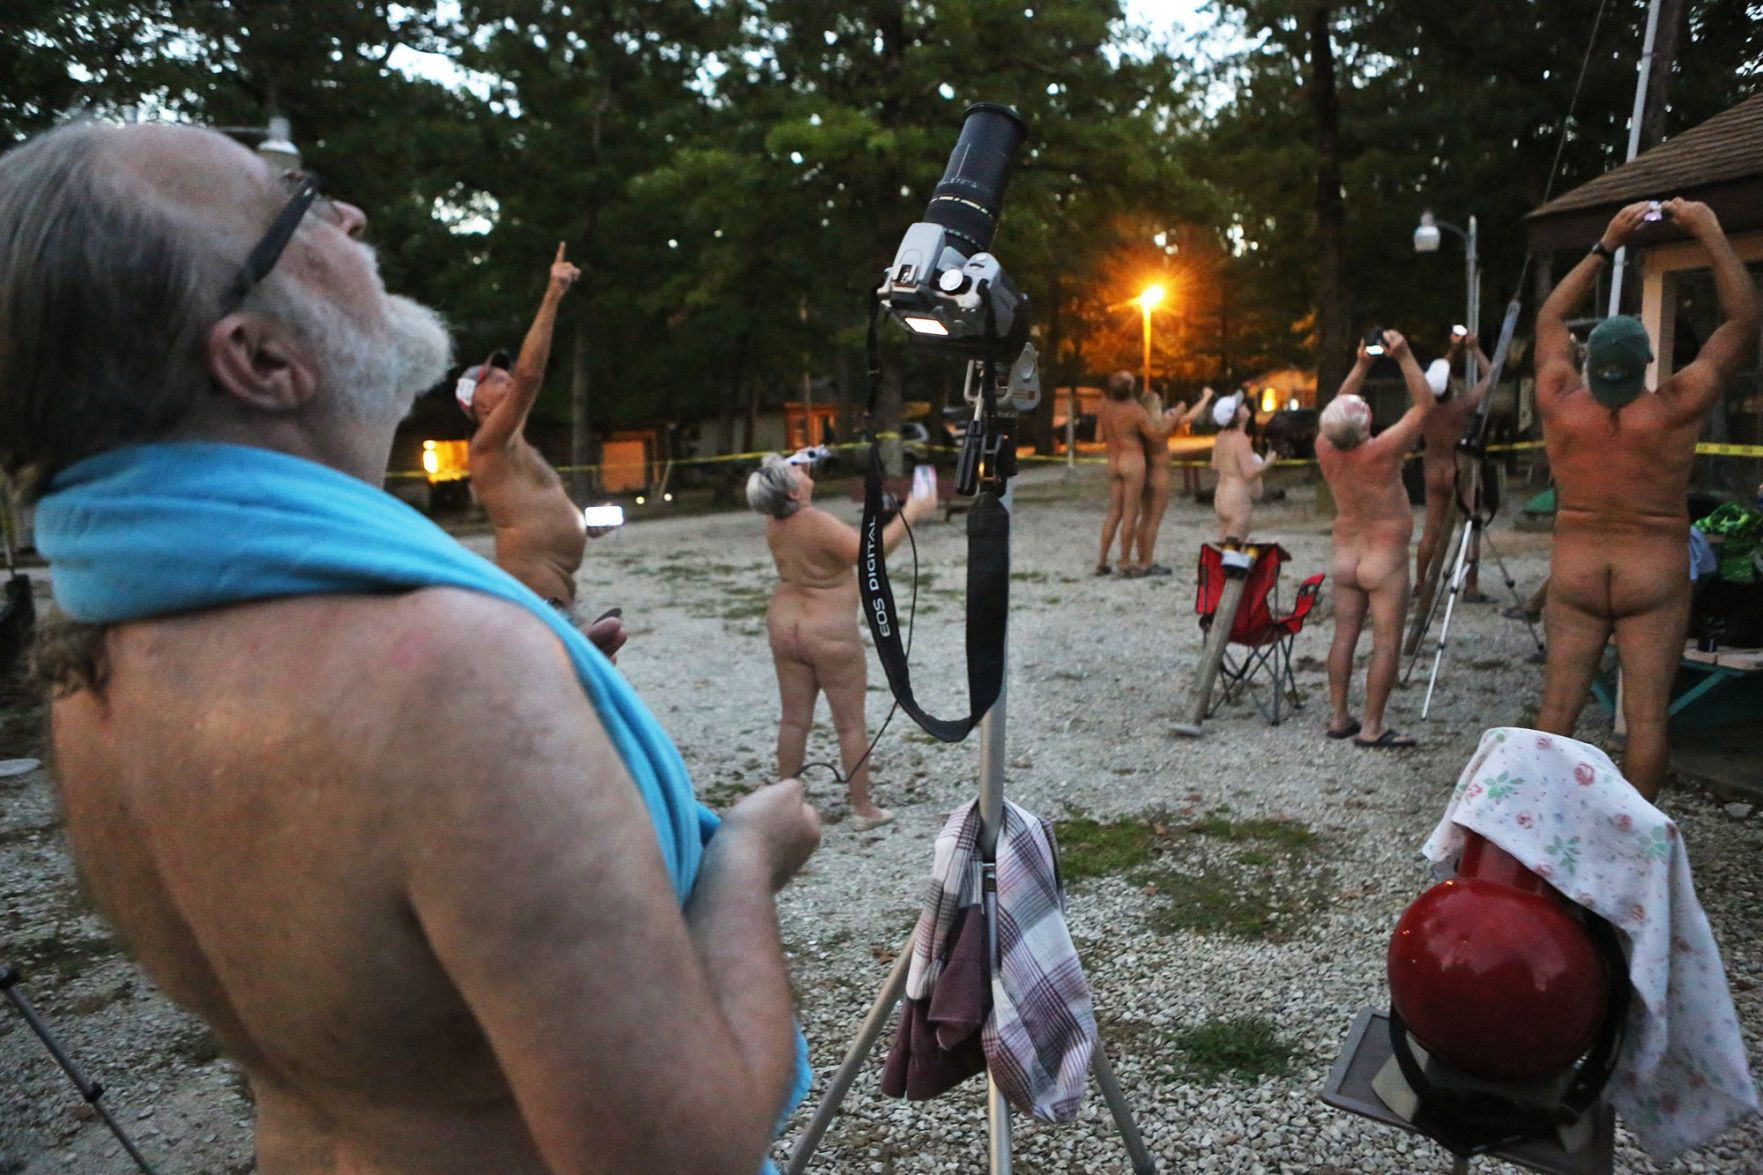 nudist missouri campgrounds in